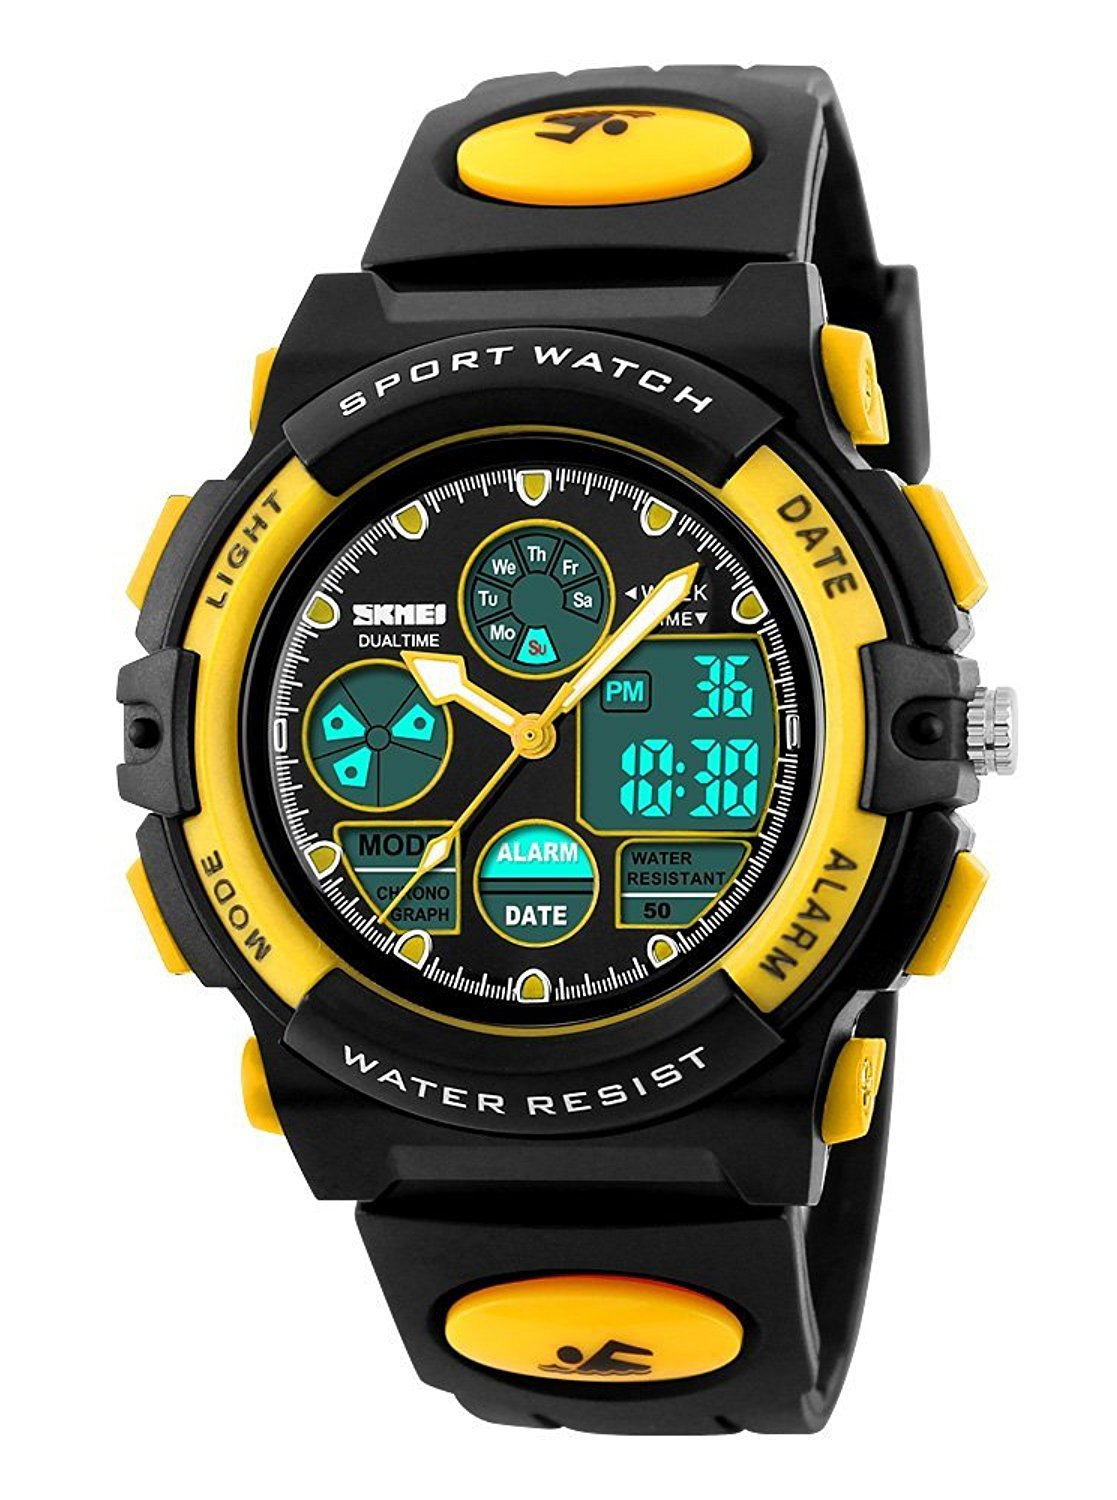 Gosasa Waterproof Swimming Sports Watch Boys Girls Led Digital Watches for Kids, Rubber strap (Yellow)